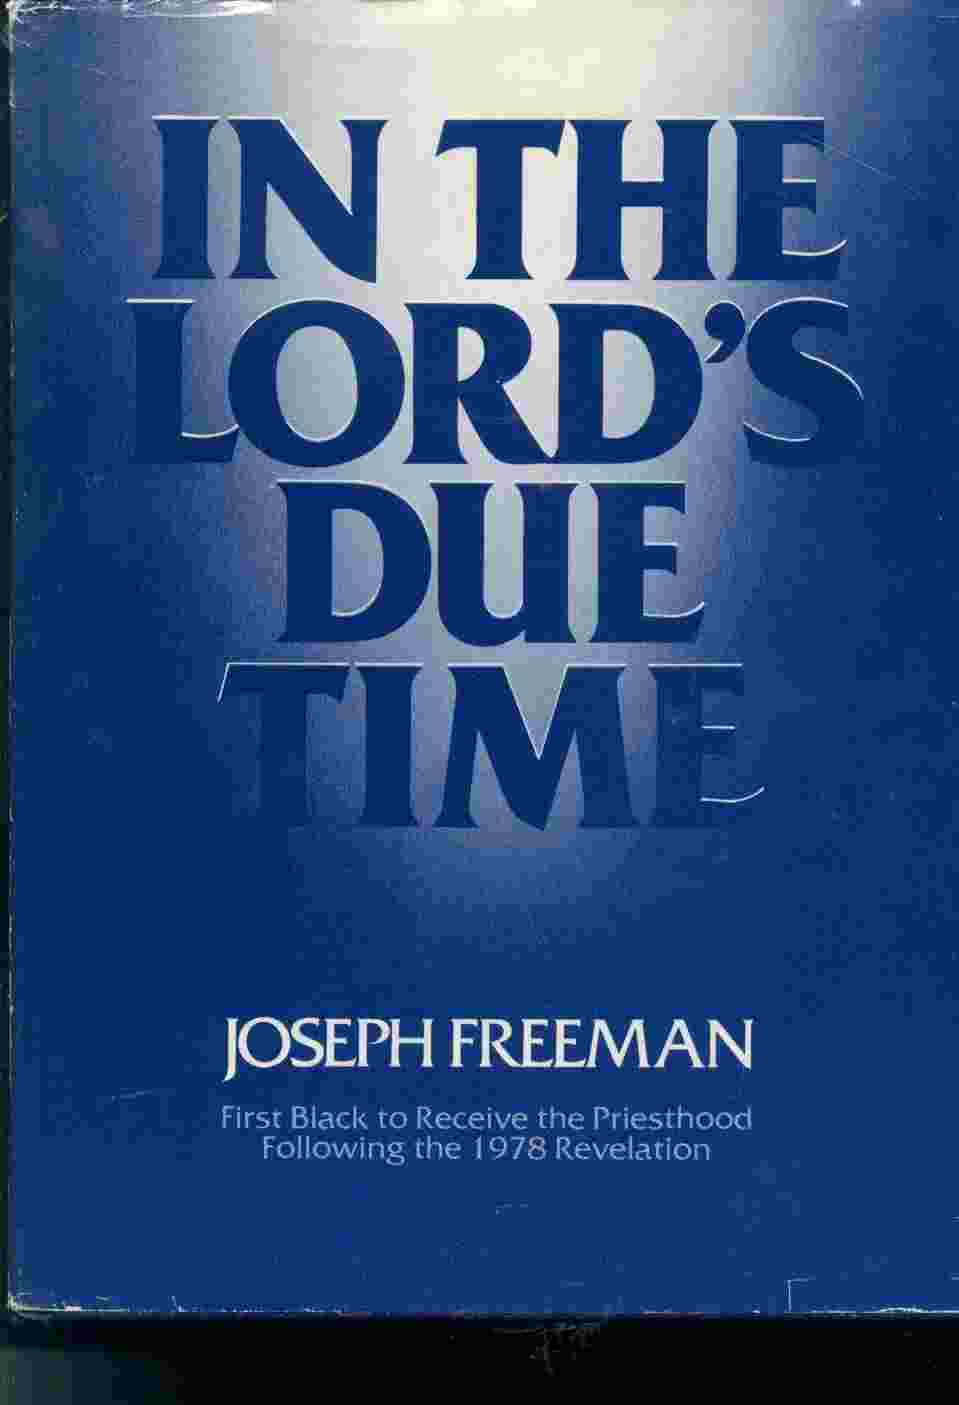 Image for IN THE LORD'S DUE TIME -  First Black to Receive the Priesthood Following the 1978 Revelation